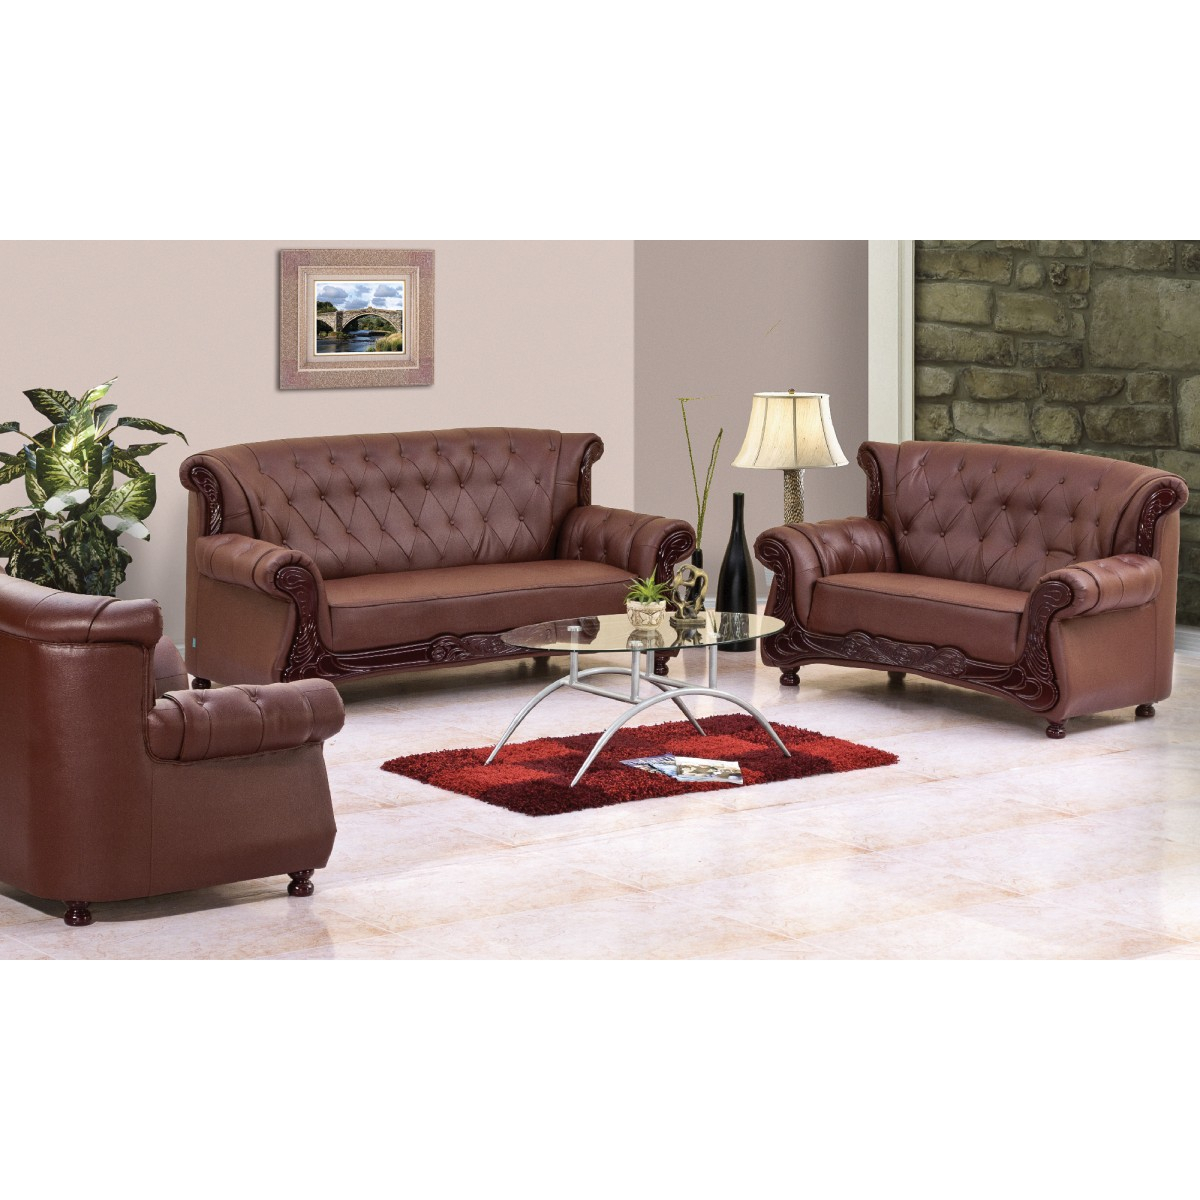 Grace Sofa (3 + 2 + 1 Seater) | Damro pertaining to Grace Sofa Chairs